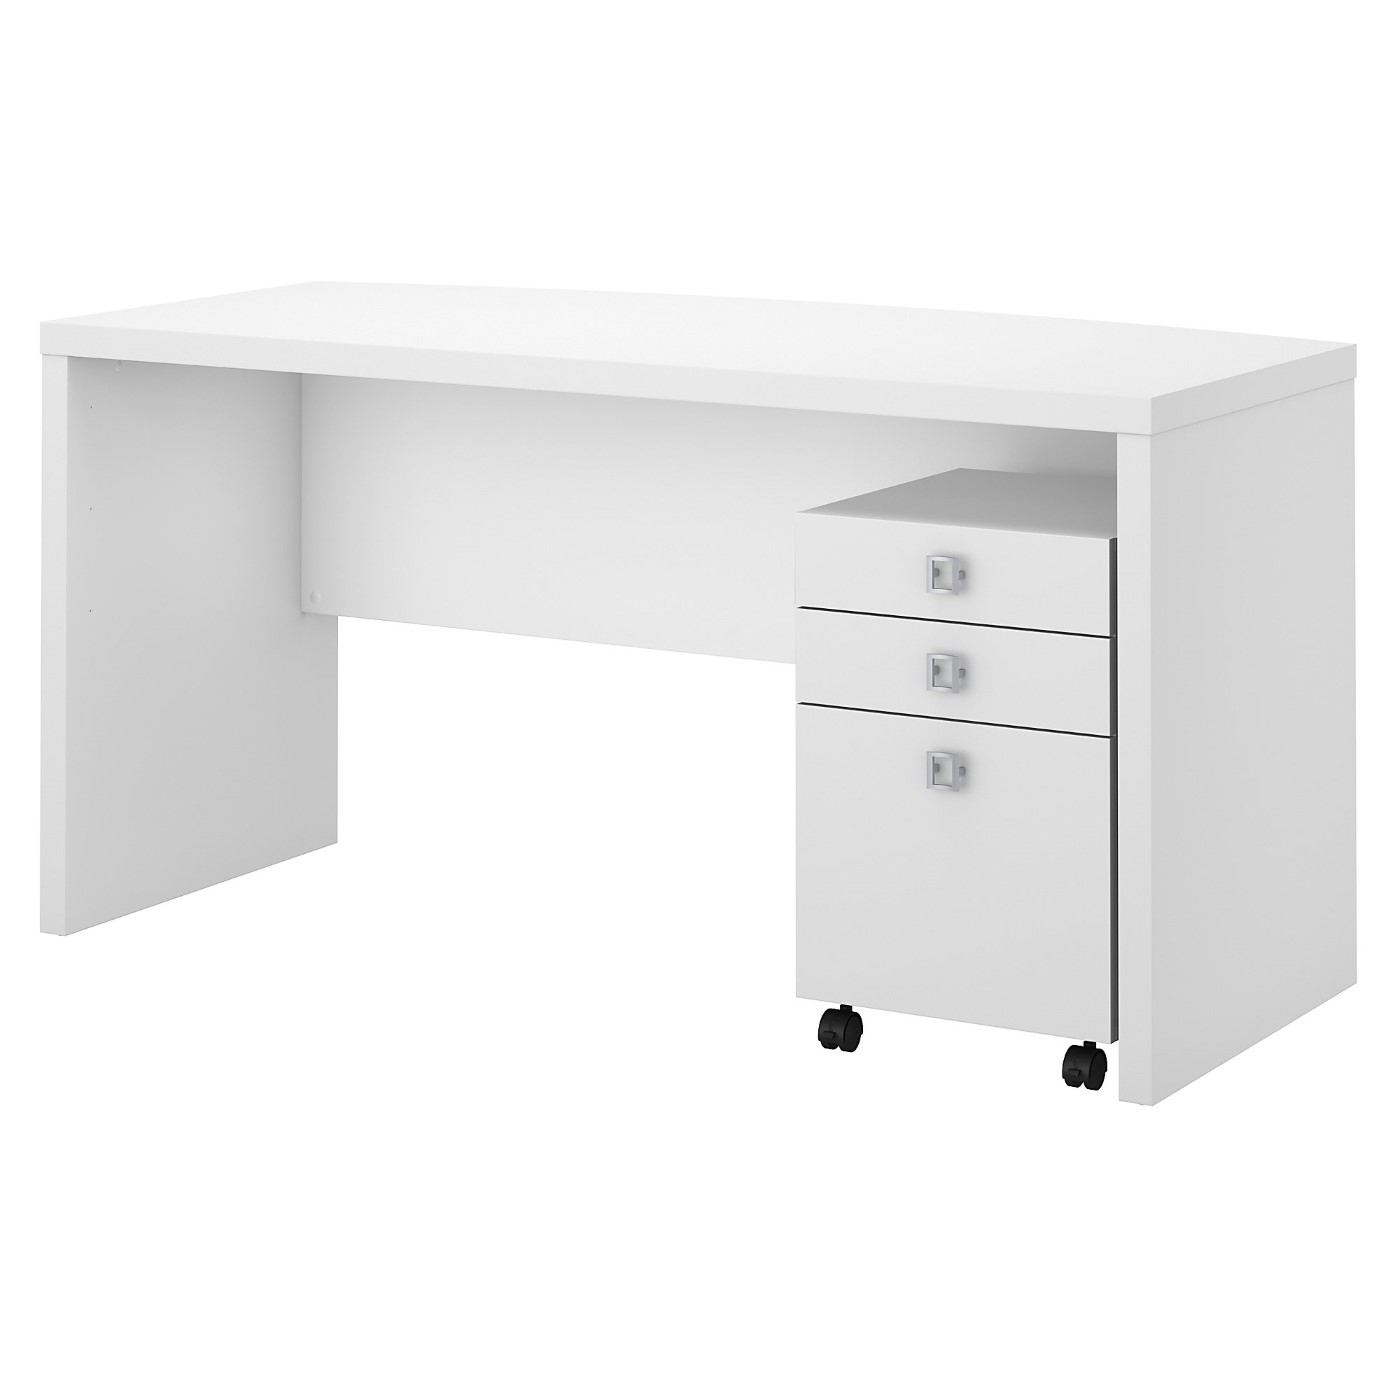 OFFICE BY KATHY IRELAND® ECHO BOW FRONT DESK WITH MOBILE FILE CABINET. FREE SHIPPING